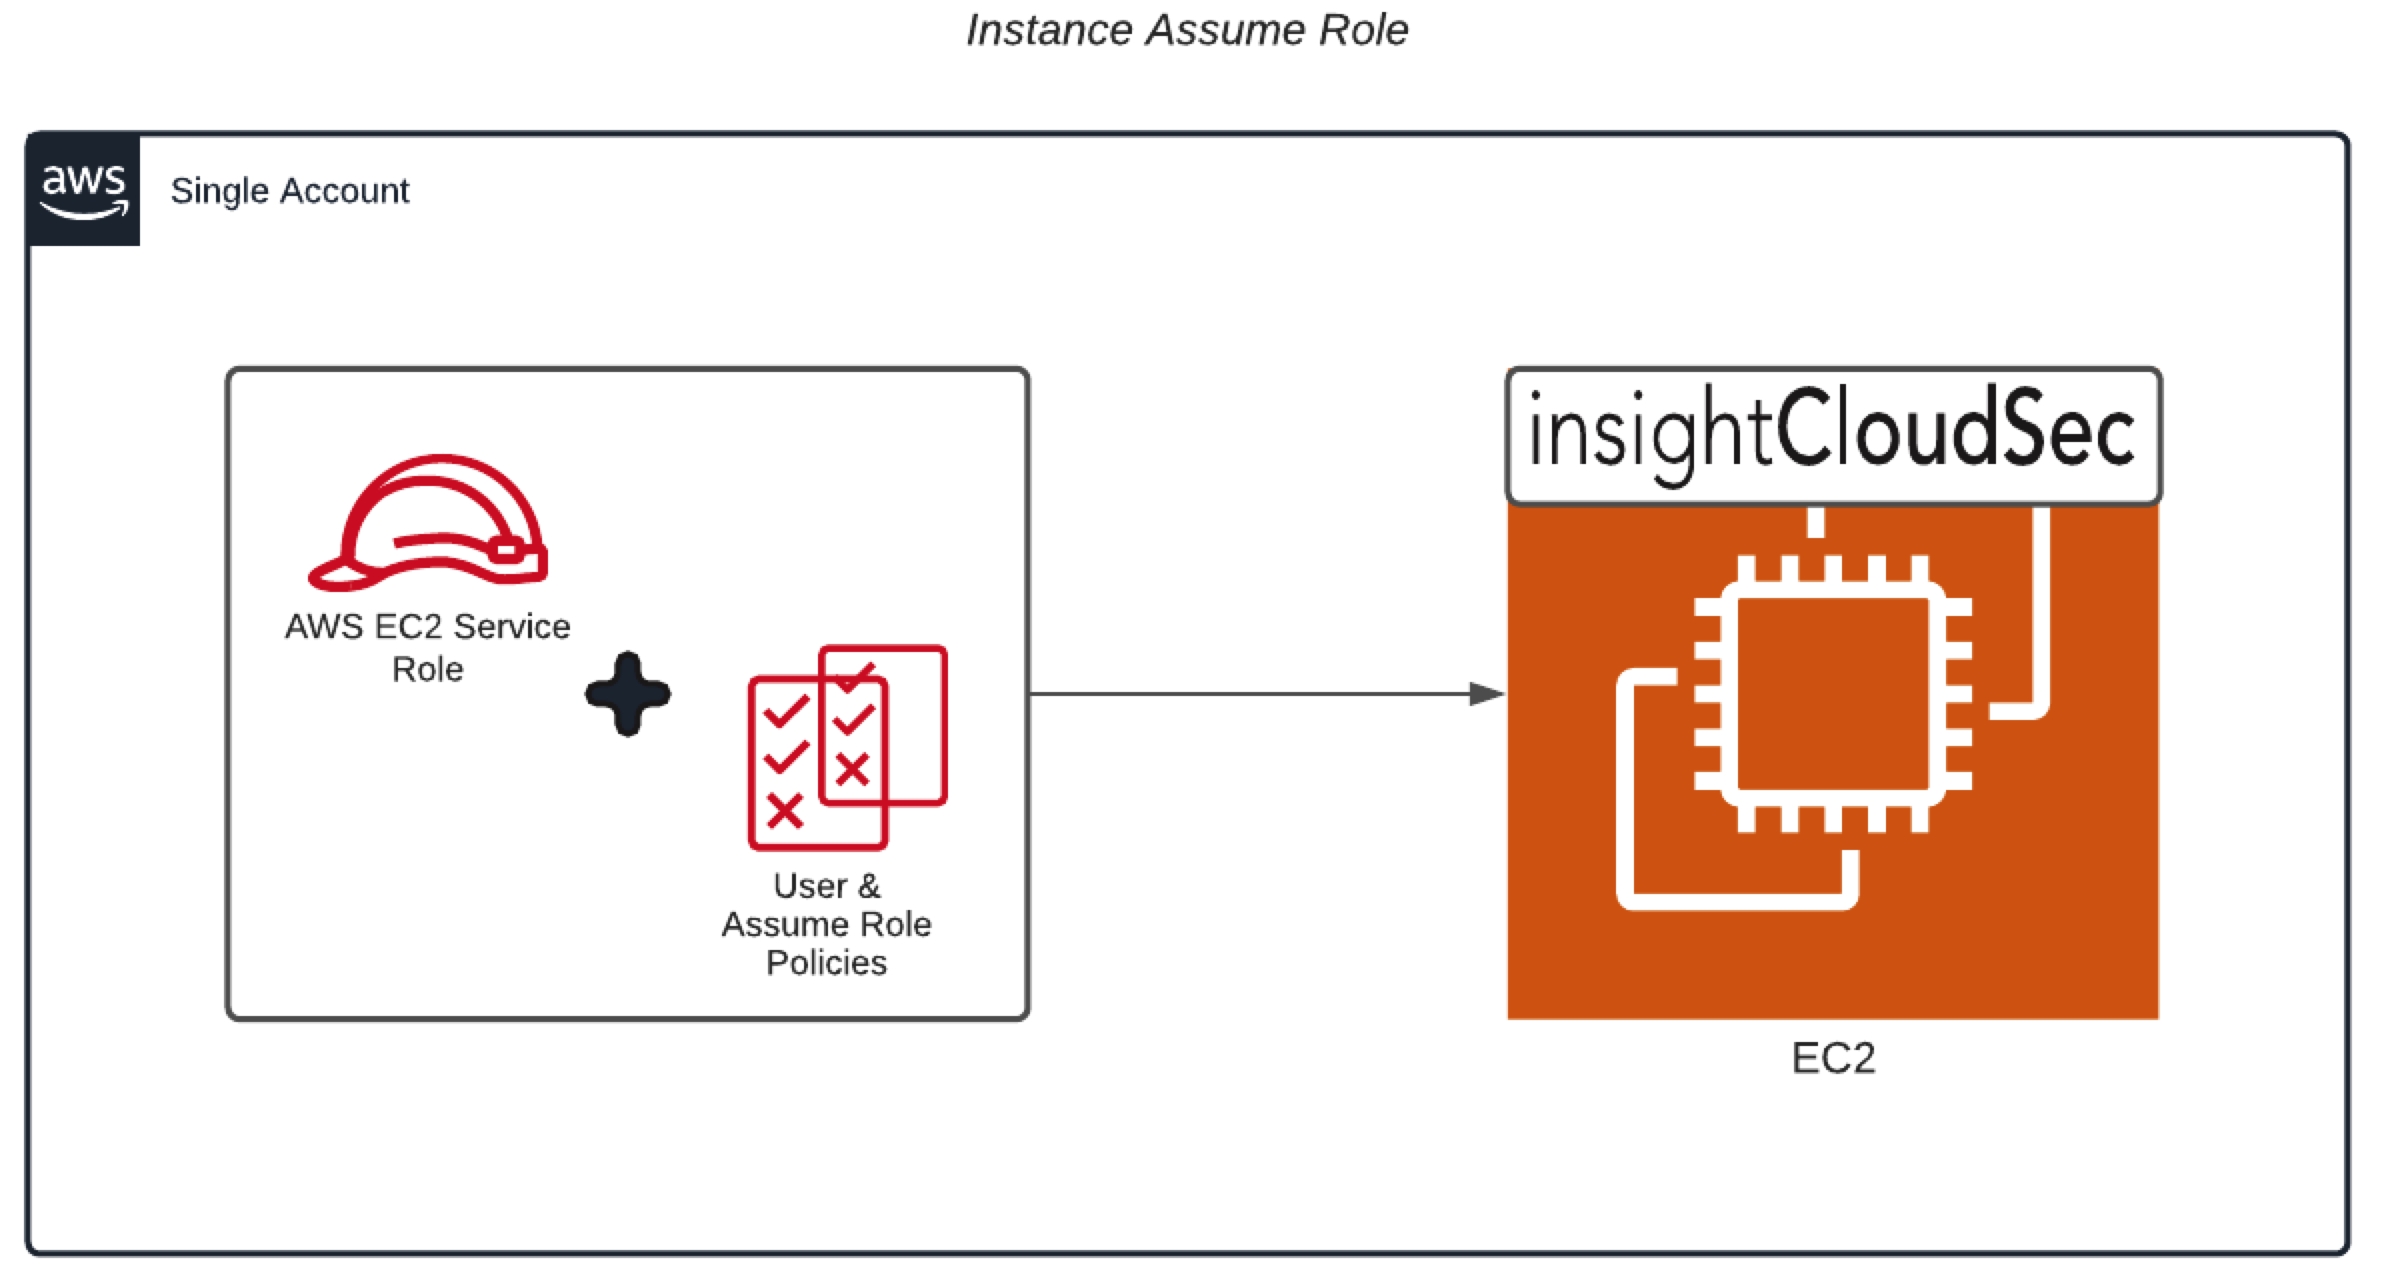 Instance Assume Role - End State